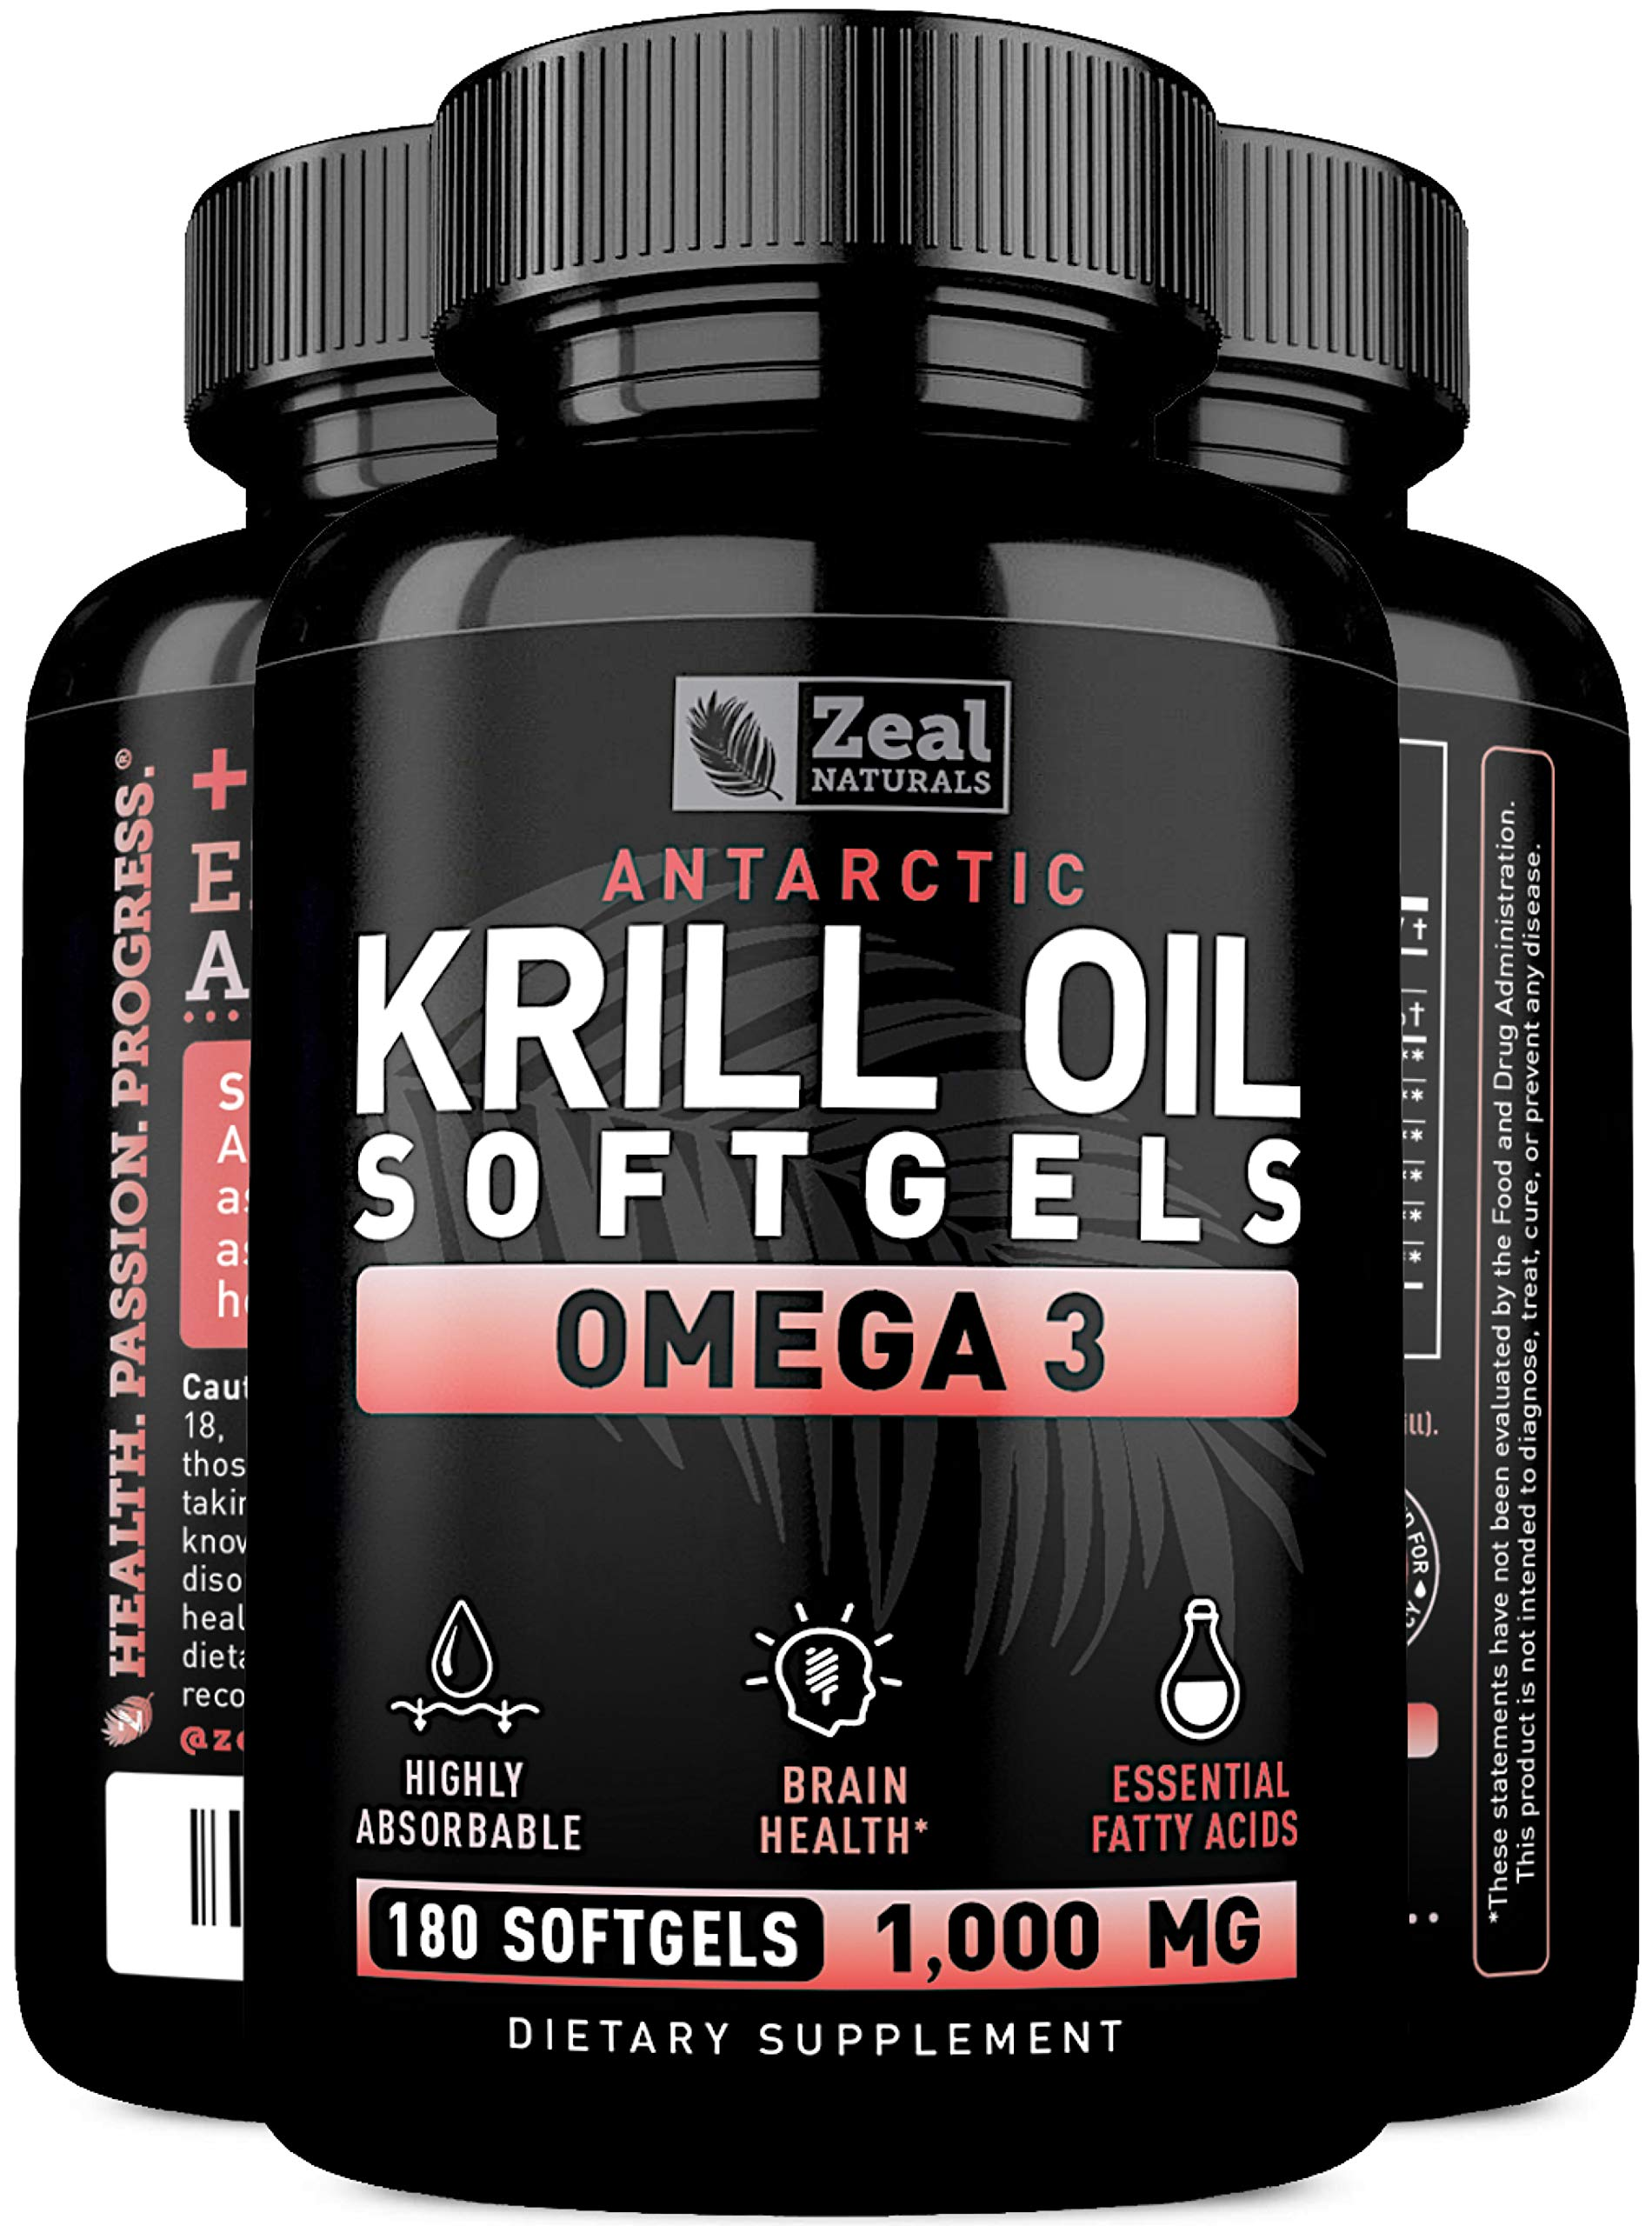 Pure Antarctic Krill Oil + Omega 3 (1000mg | 180 Softgels) Maximum Strength Omega 3 Krill Oil Supplement with EPA, DHA & Astaxanthin - Omega 3 Fish Oil for Joint Support, Brain Health, Heart Health by Zeal Naturals